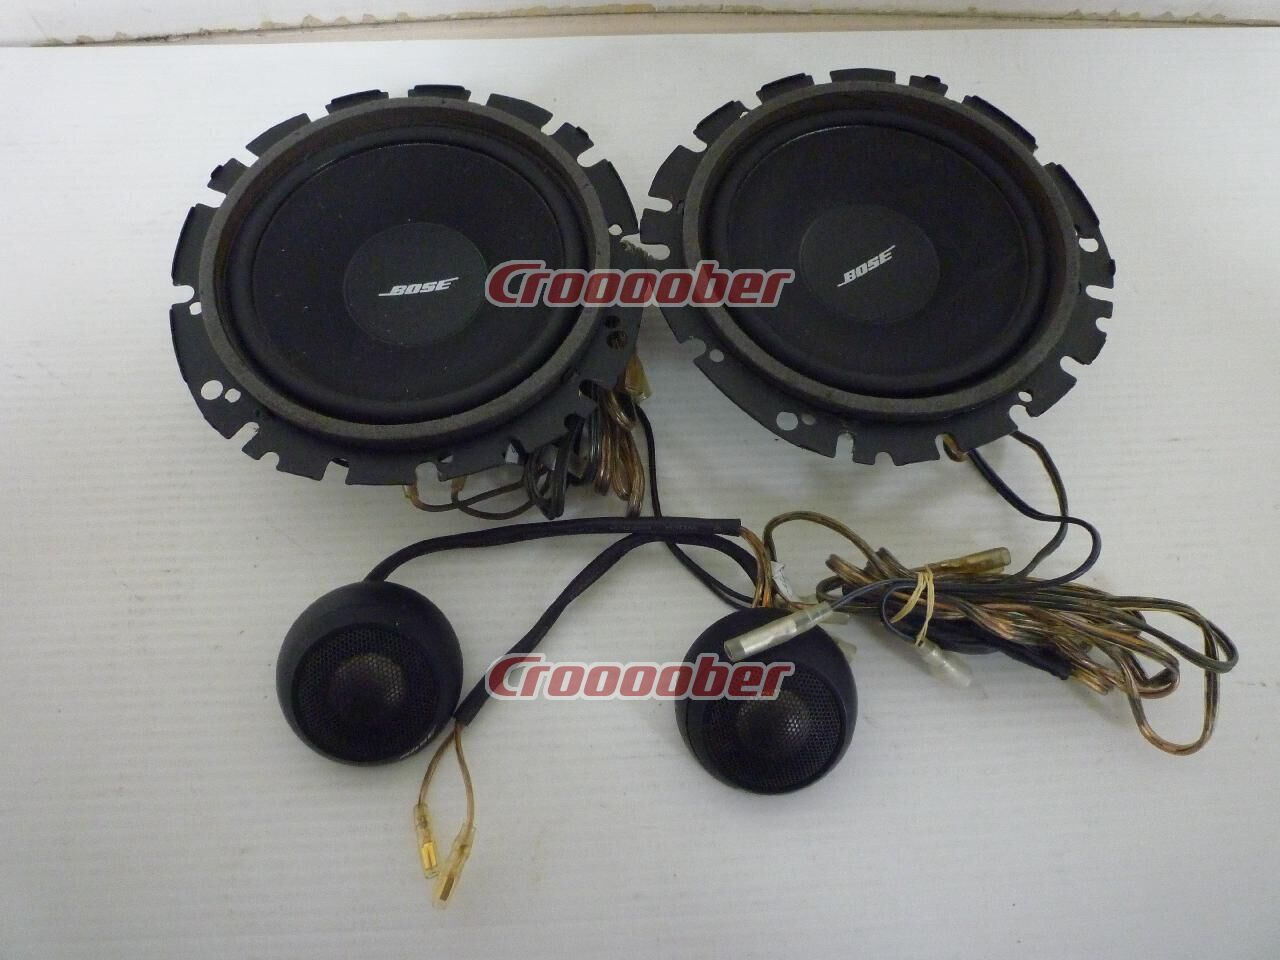 Bose Speakers For Cars >> Bose 1060 Ii 16 Cm 2 Way Speaker Implantable Speakers Croooober